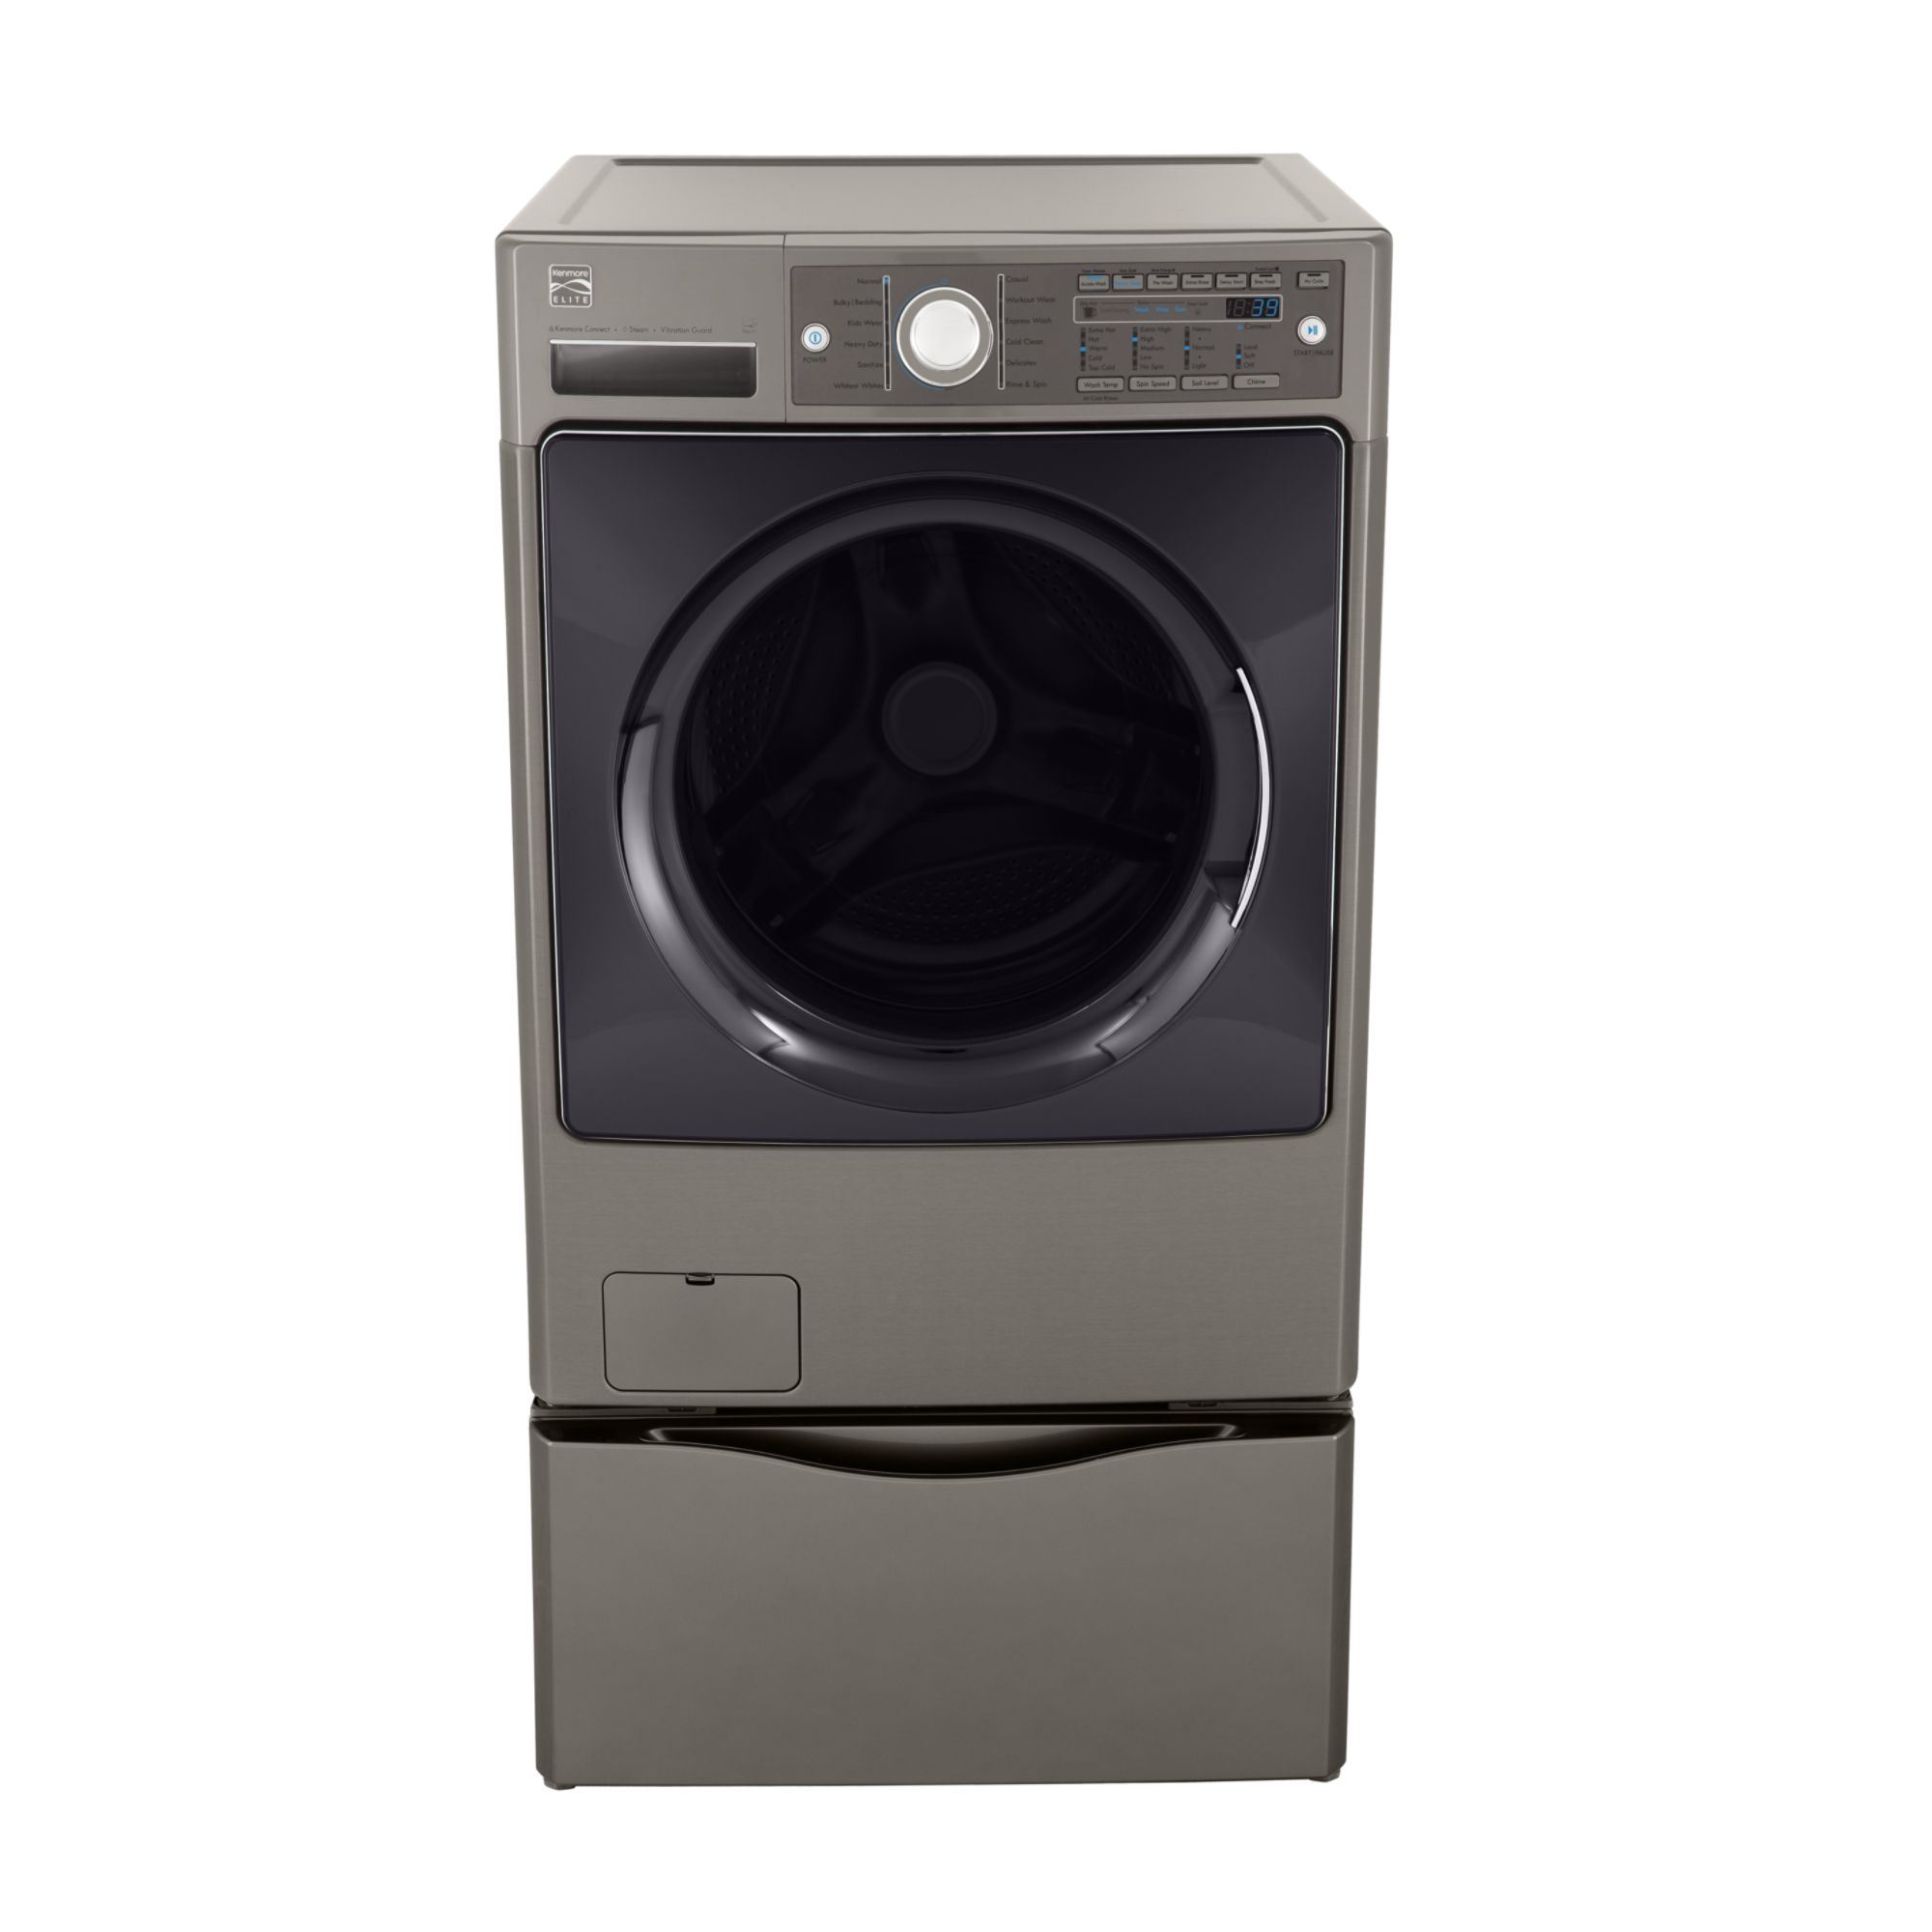 Kenmore Elite 4.0 cu. ft. Steam Front-Load Washer - Metallic Gray